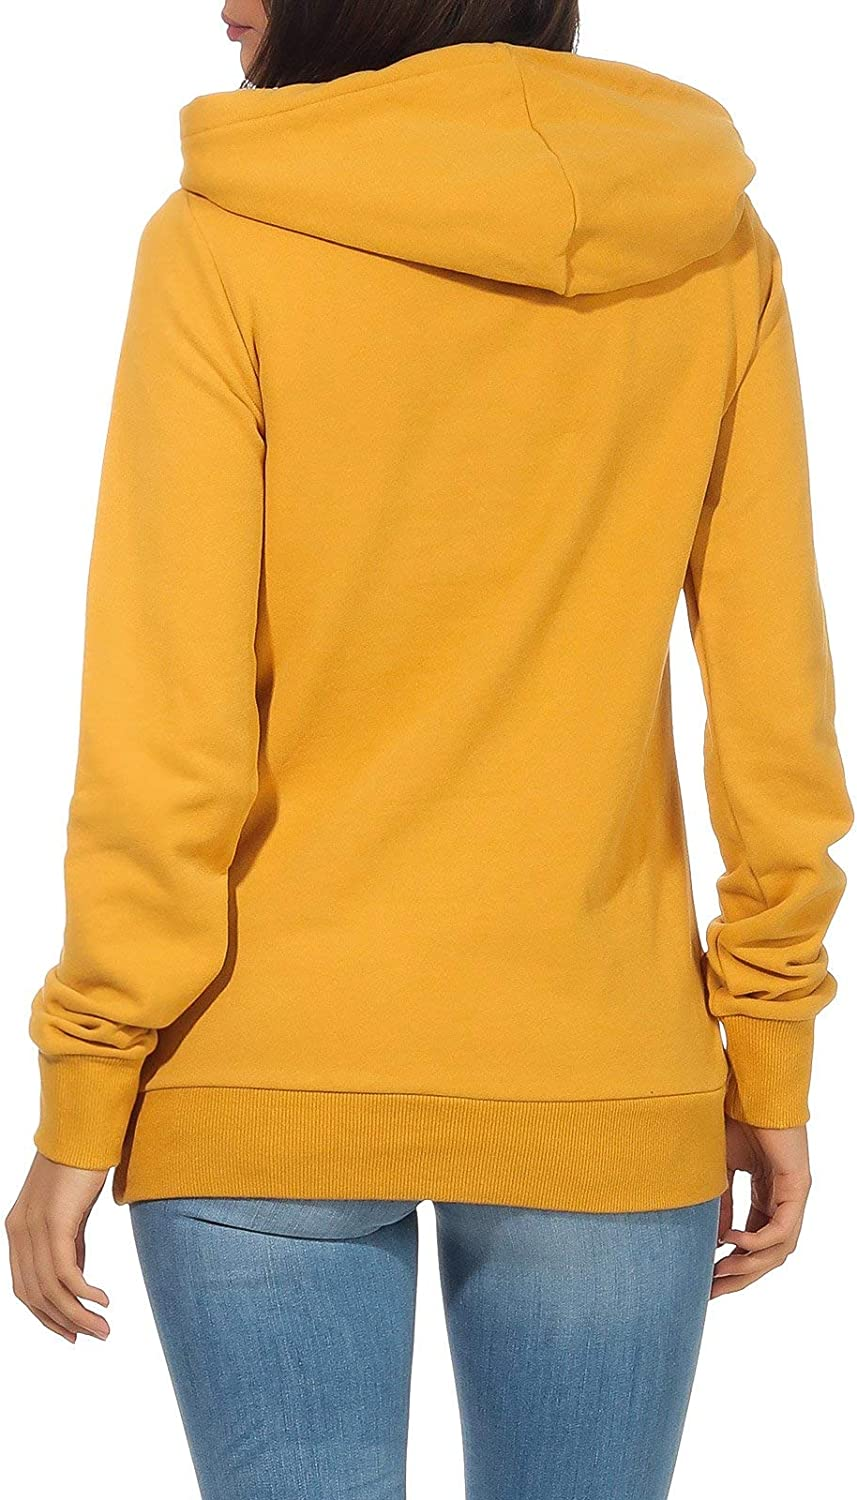 Aiki Keylook Damen Hoodie Kapuzen-Sweatshirt Who Way Mustard